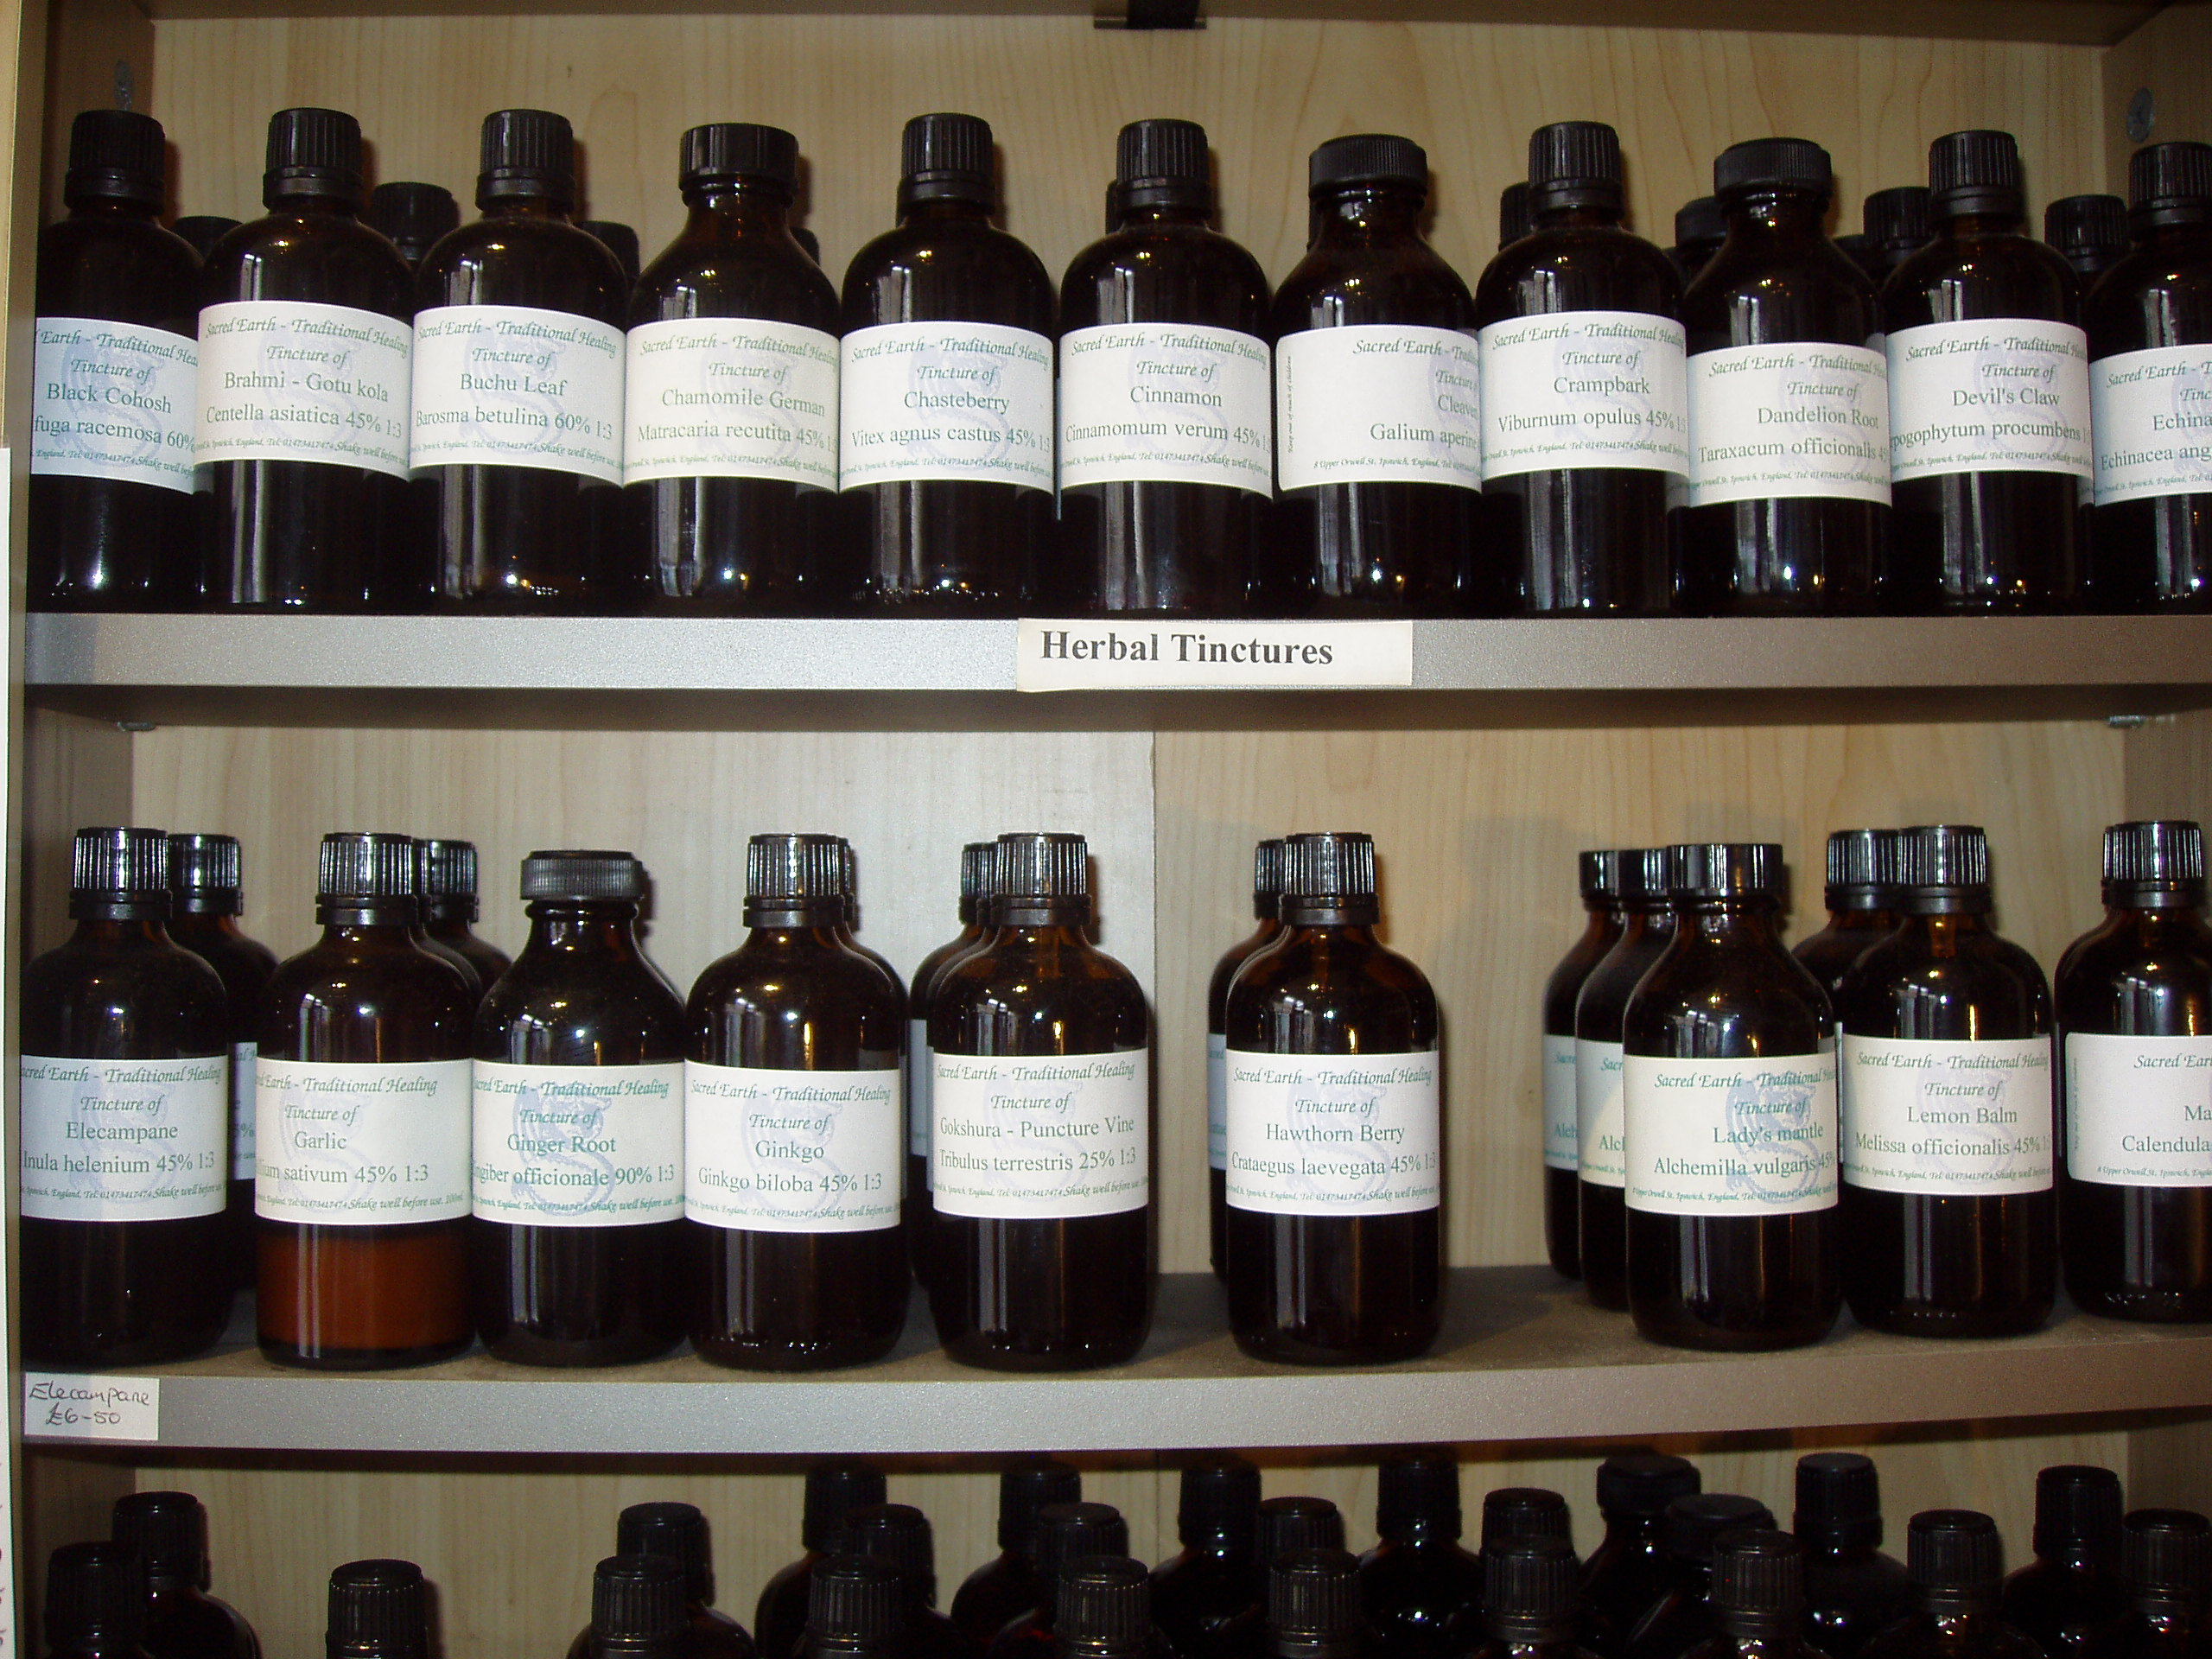 Herbal Tinctures - Liquorice root